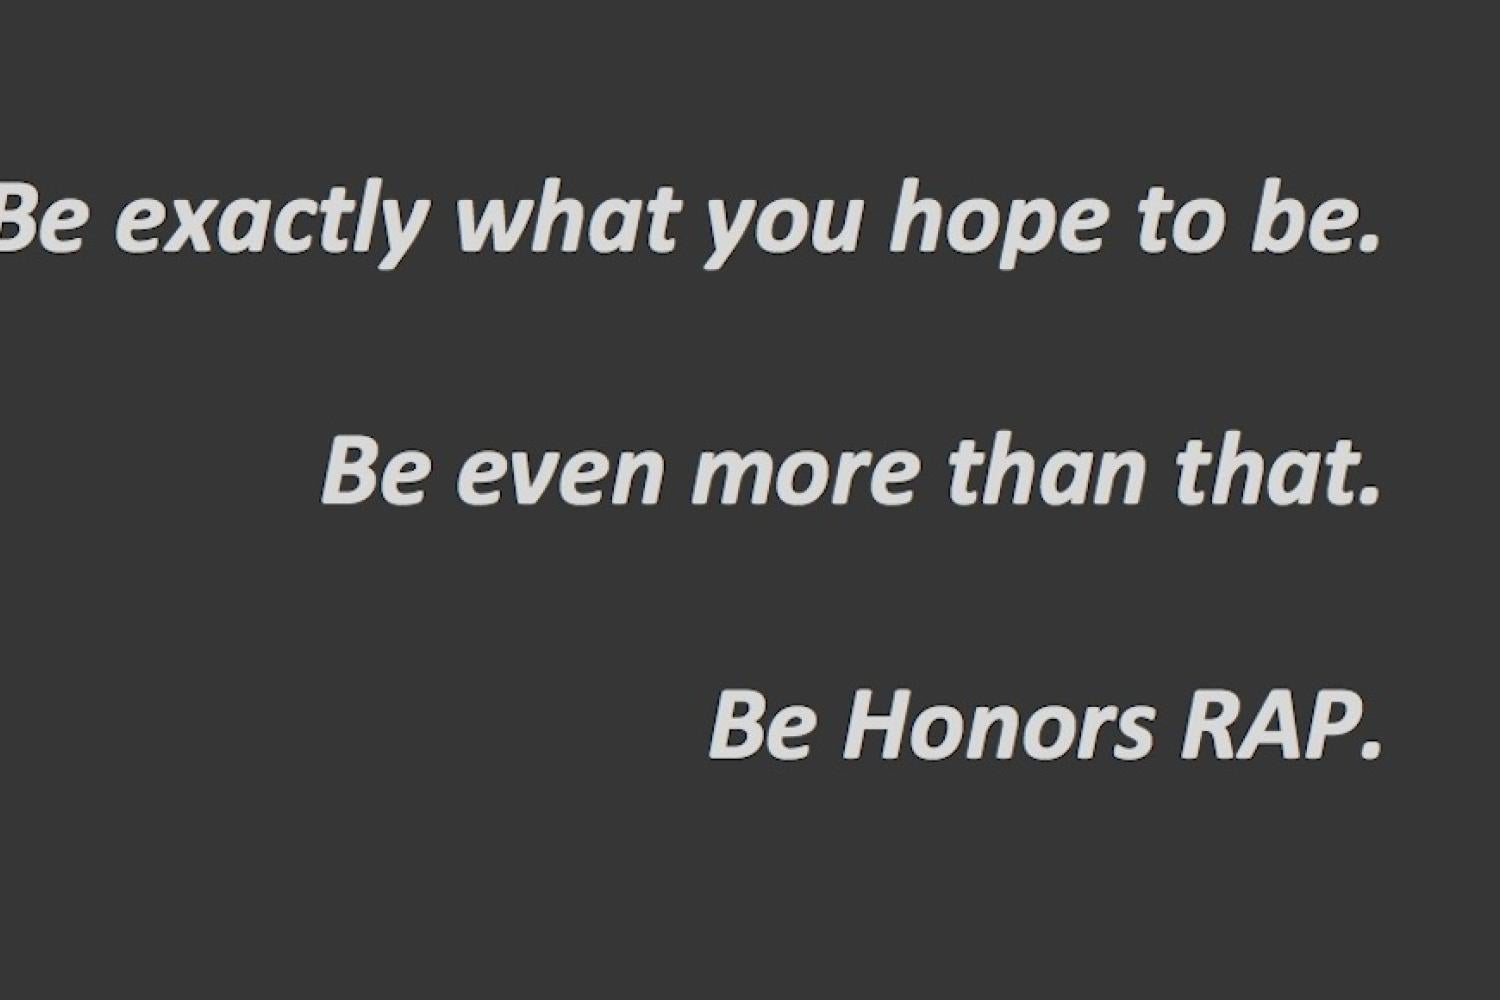 Be exactly what you hope to be.  Be even more than that.  Be Honors RAP.